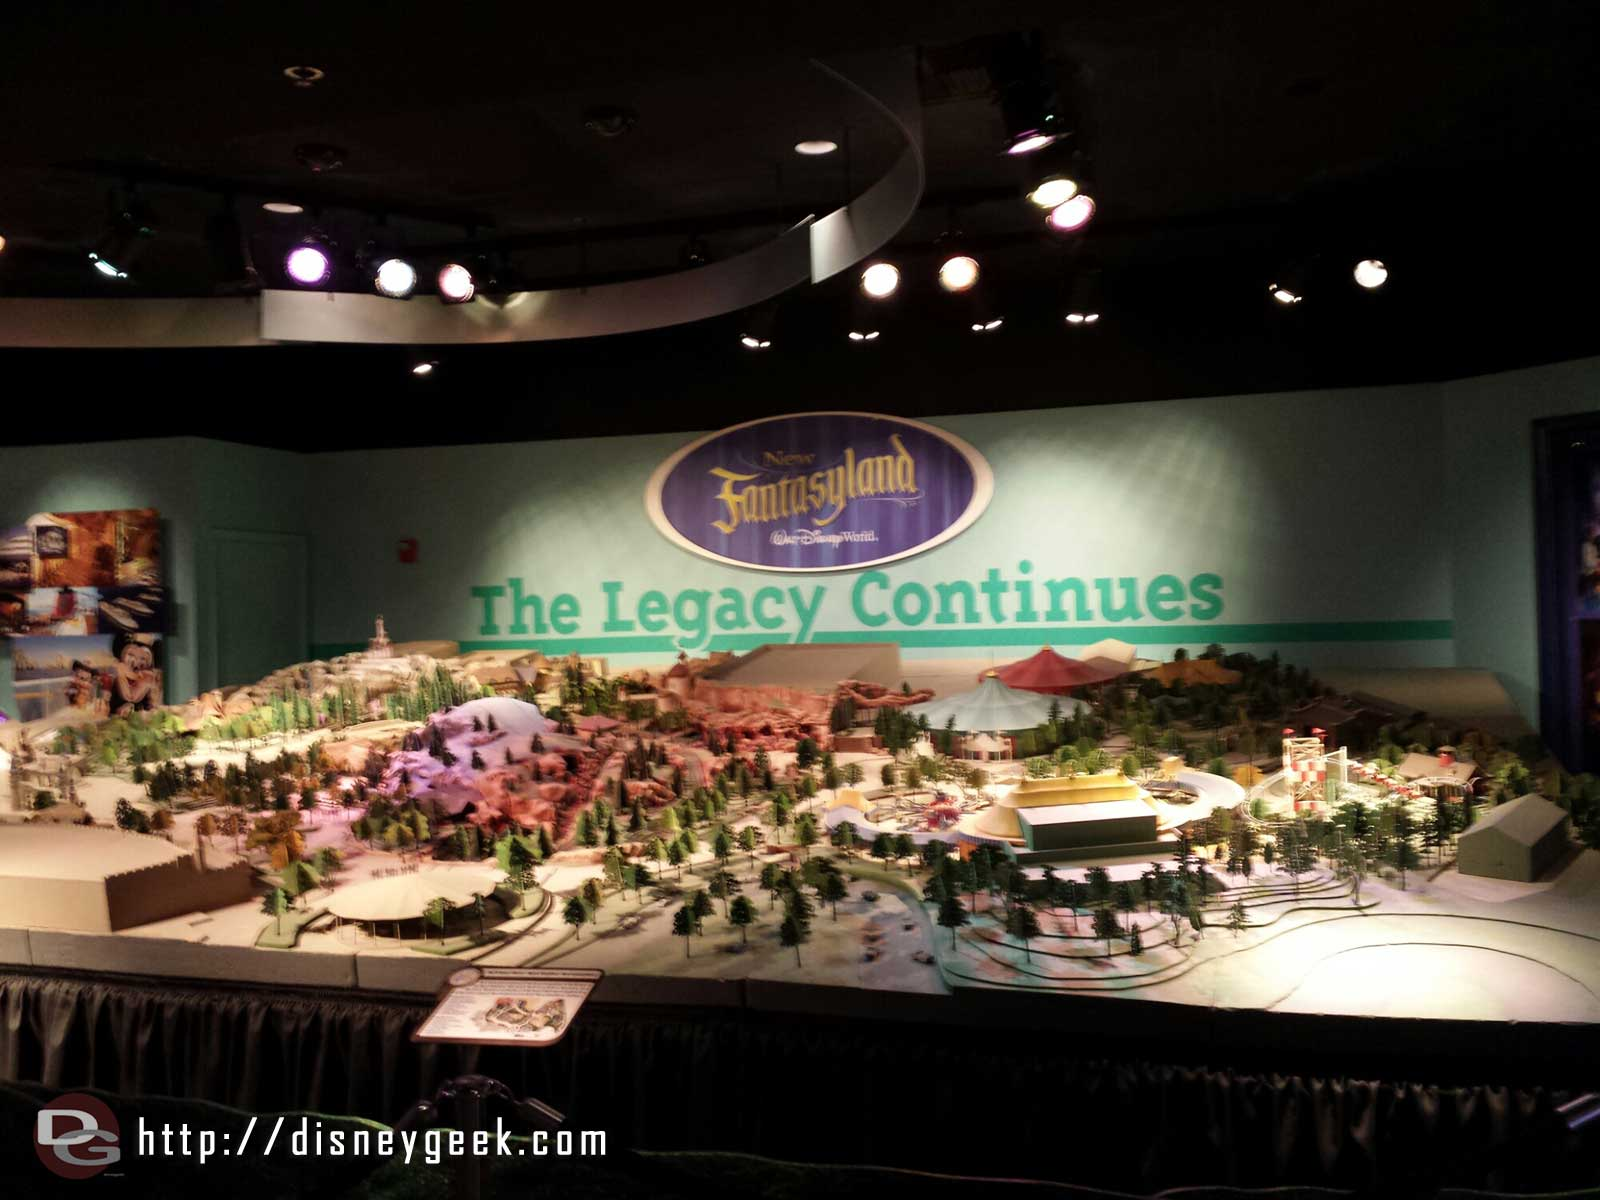 WDW Magic Kingdom new Fantasyland model is also still there